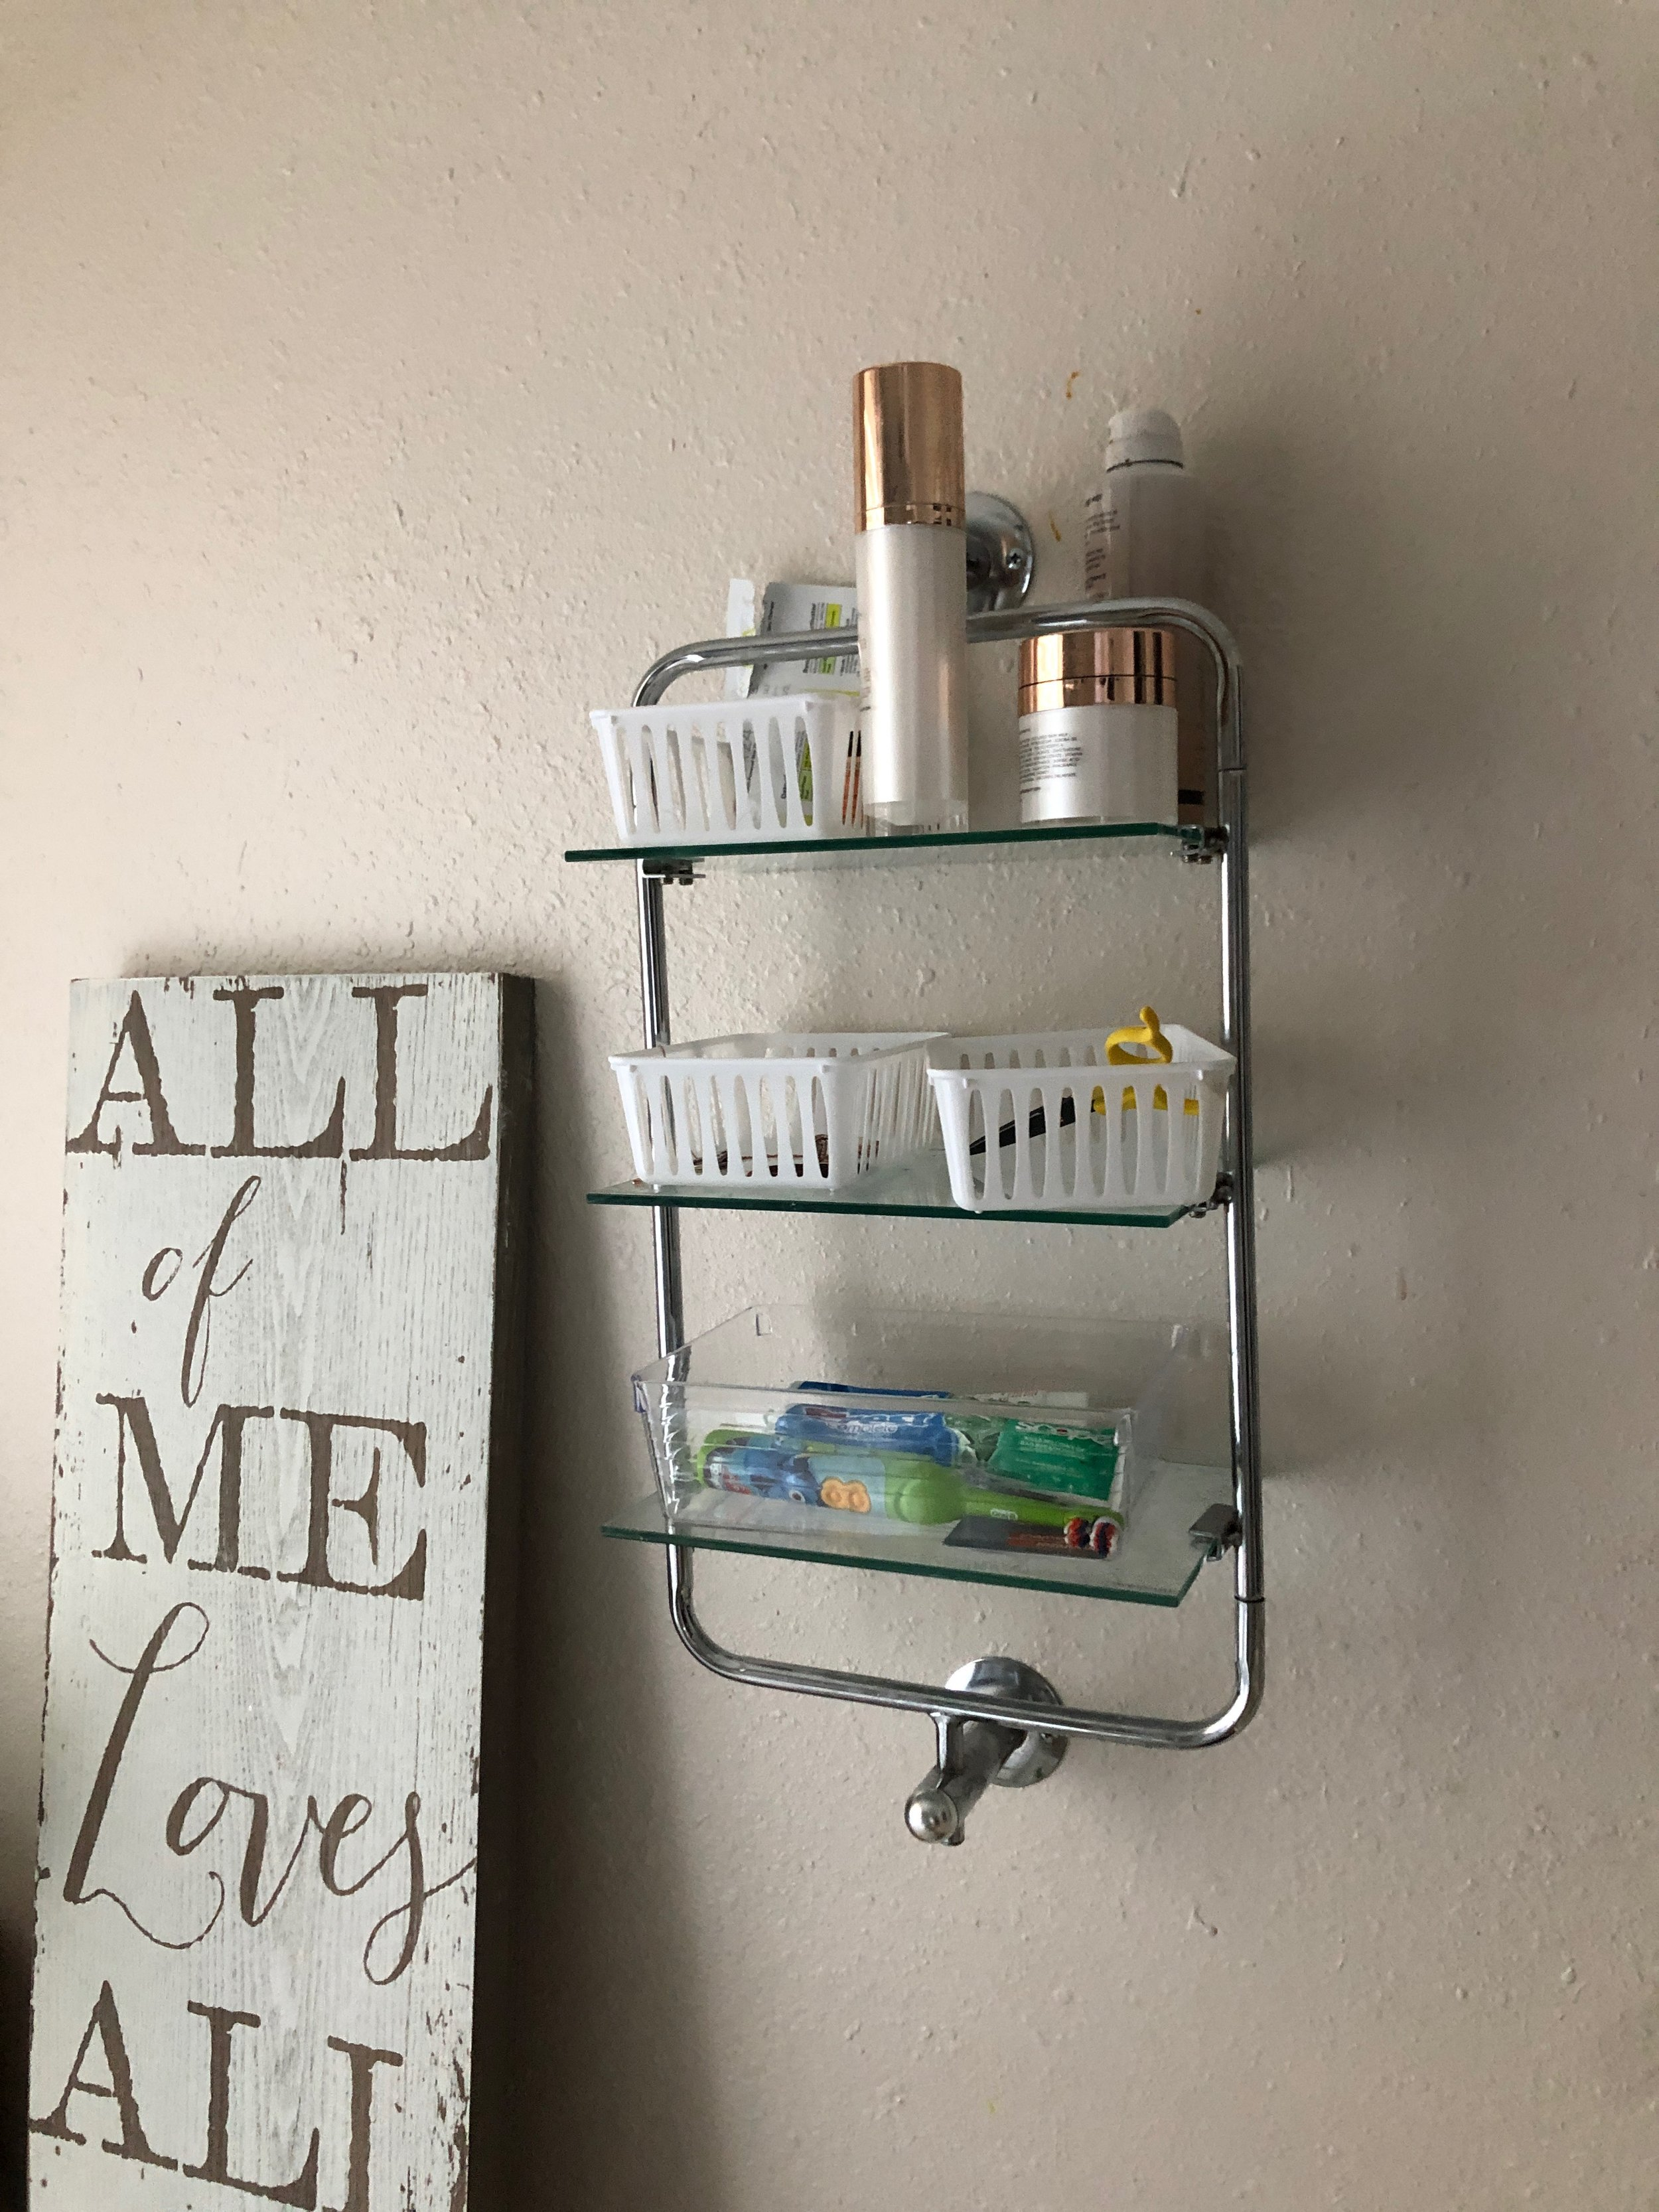 I had a small budget to work with and couldn't hire any subs. Mostly cuz I wanted it to be my project, but also because of the time, money and inconvenience. SO I DID IT.   It started with taking down the light and tearing off the mirror. The mirror went on with A LOT of glue, and I didn't have a pry bar. I used a butter knife and some plastic ikea spoons. The first break smacked my in the forehead and cut the skin. After that I watched youtube videos and taped up the mirror to keep it in tact.